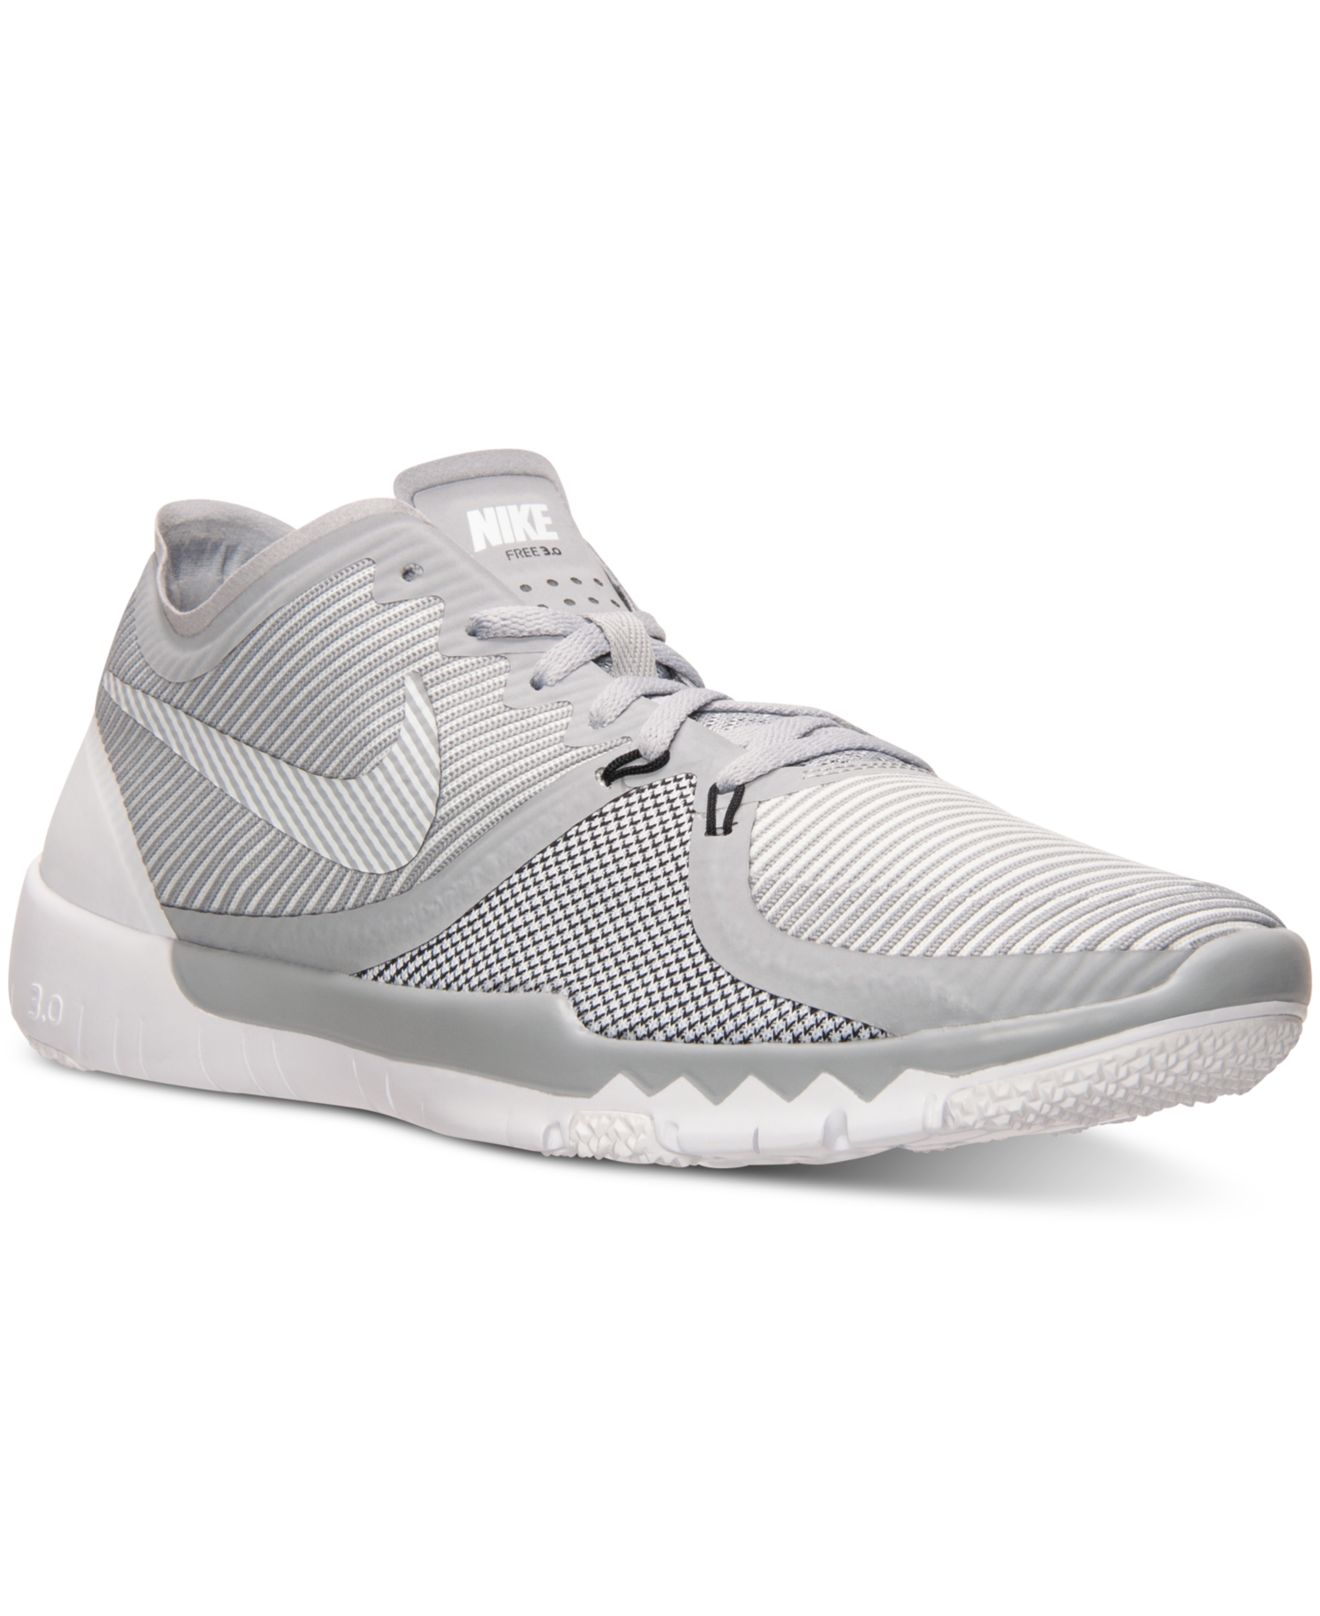 16e79fa5d6a1 ... order nike mens free trainer 3.0 v4 training sneakers from finish line  in gray for men ...